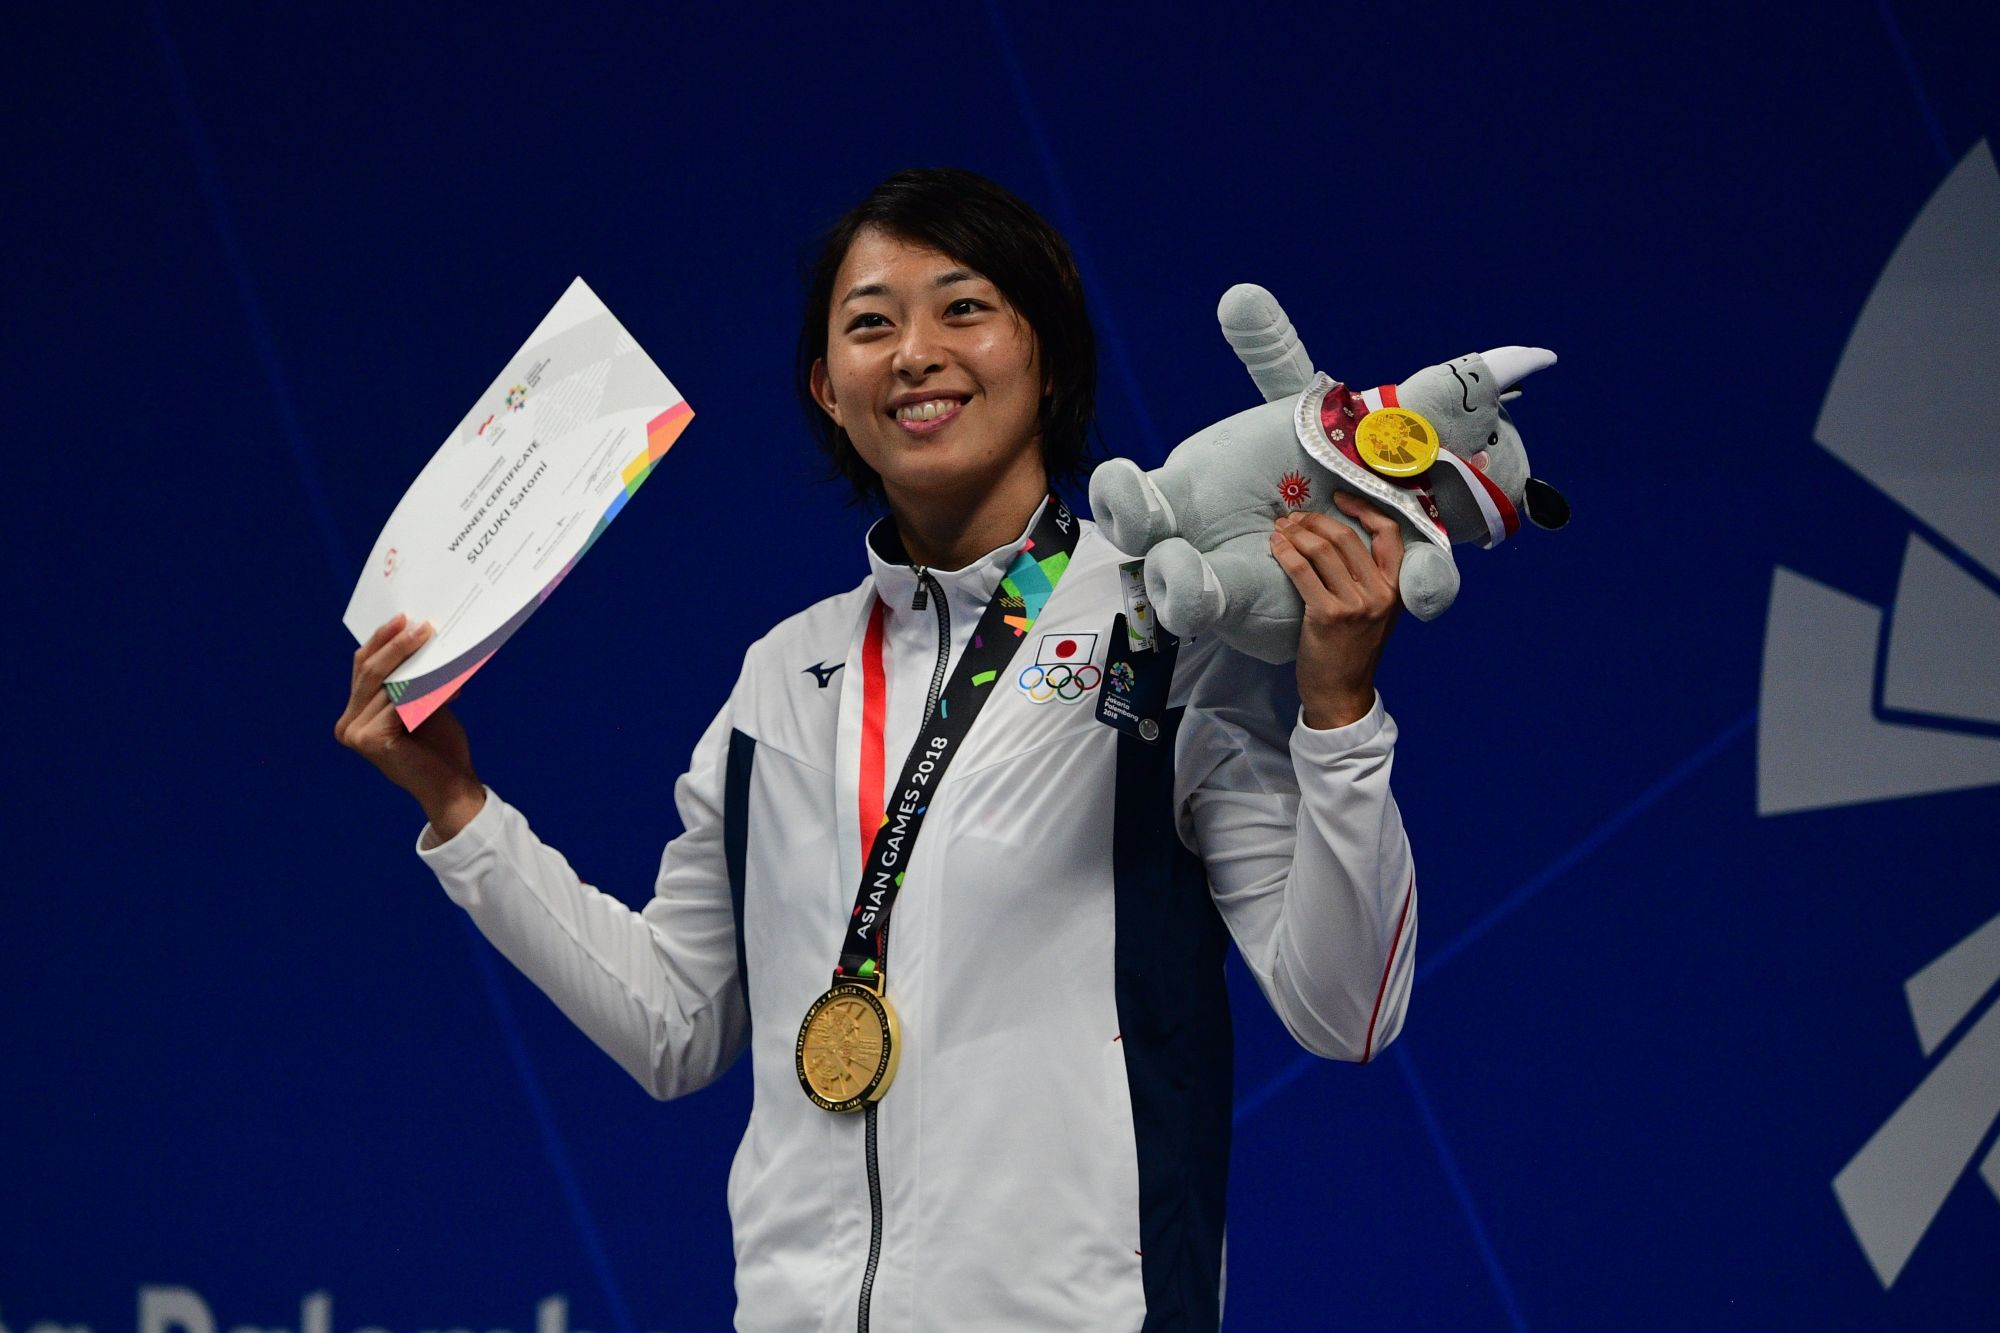 Satomi Suzuki, seen celebrating after winning the women's 50-meter breaststroke final on Thursday at the Asian Games in Jakarta, collected three golds at the marquee meet. | AFP-JIJI